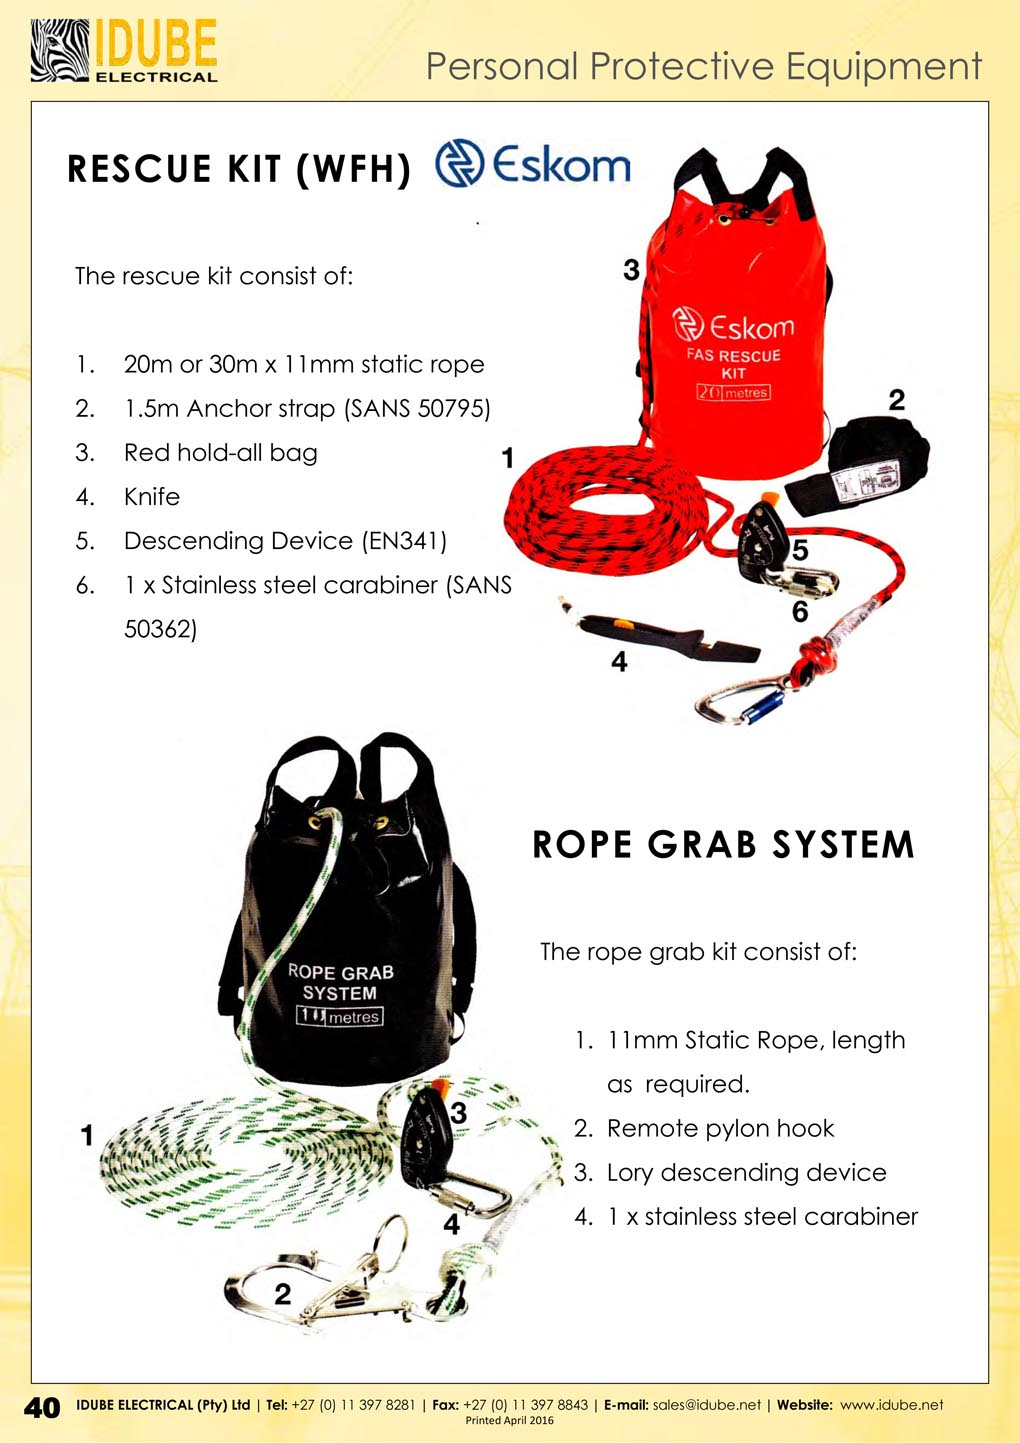 Idube Rescue Kit & Rope Grab System - 1020 x 1443